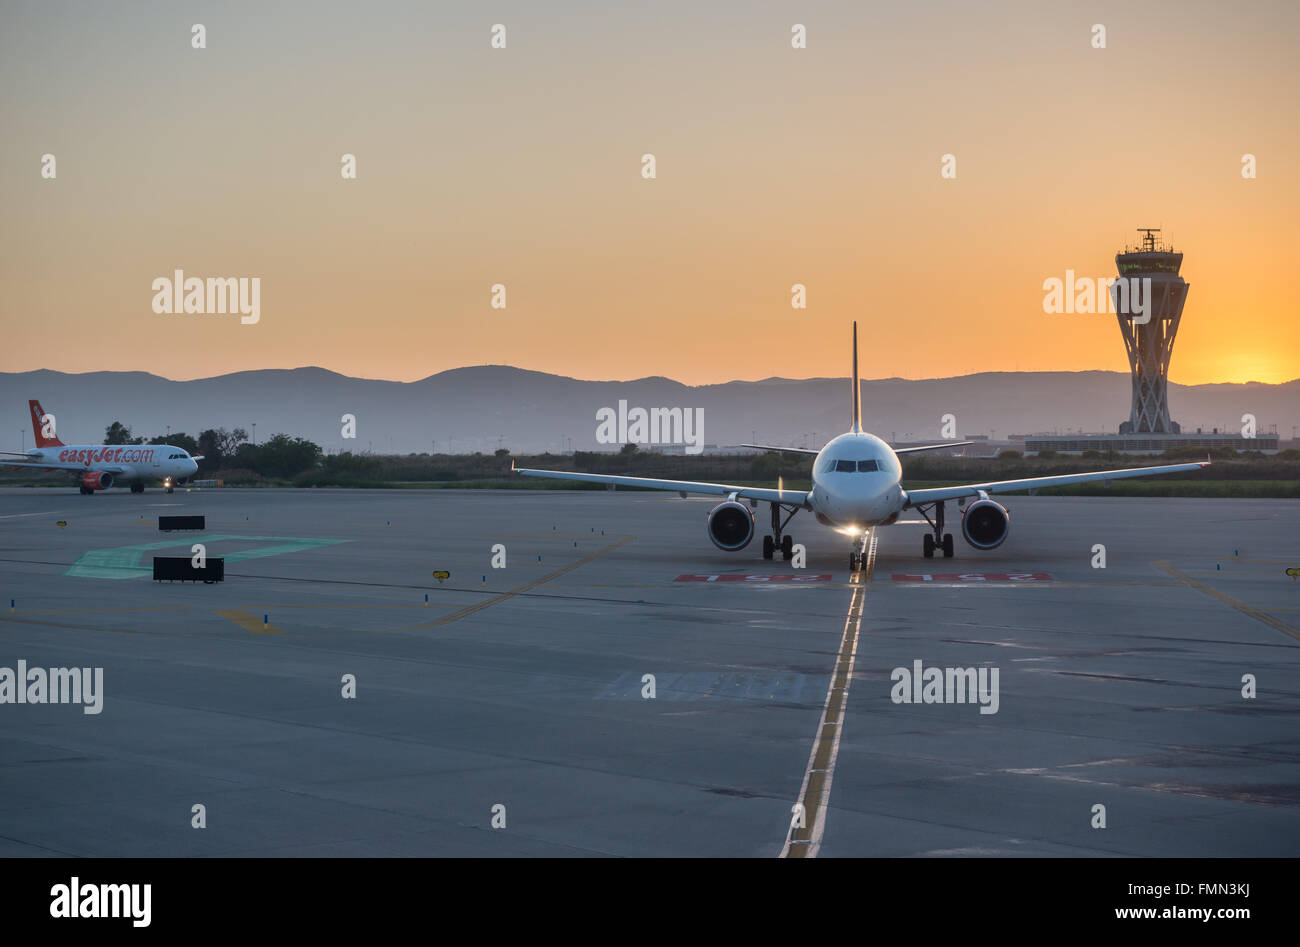 passenger airliners on El Prat Airport in Barcelona, Spain - Stock Image